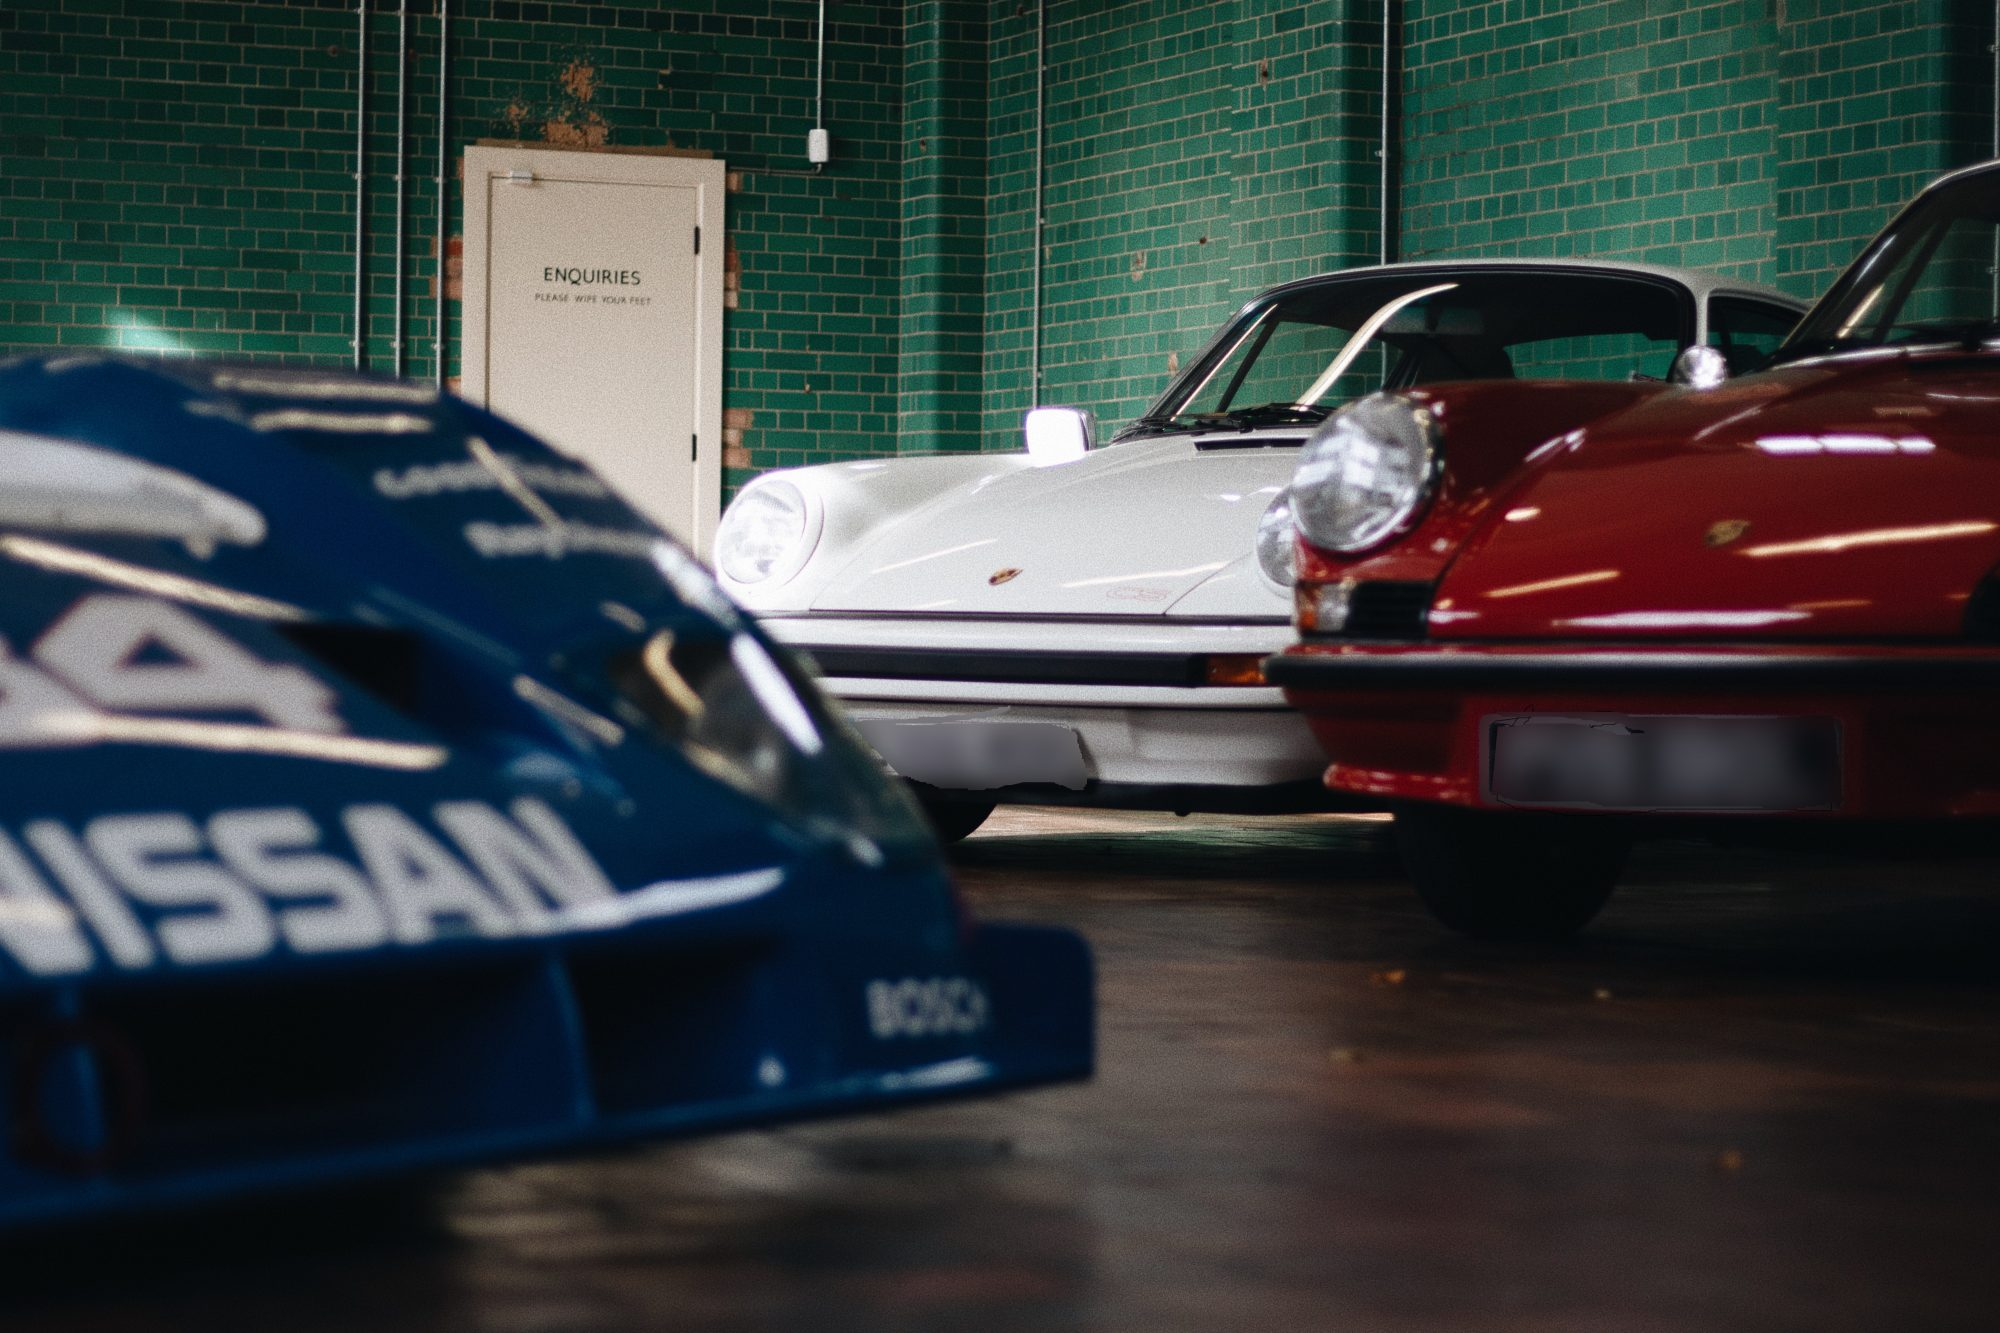 Exciting new development at Bicester Heritage site